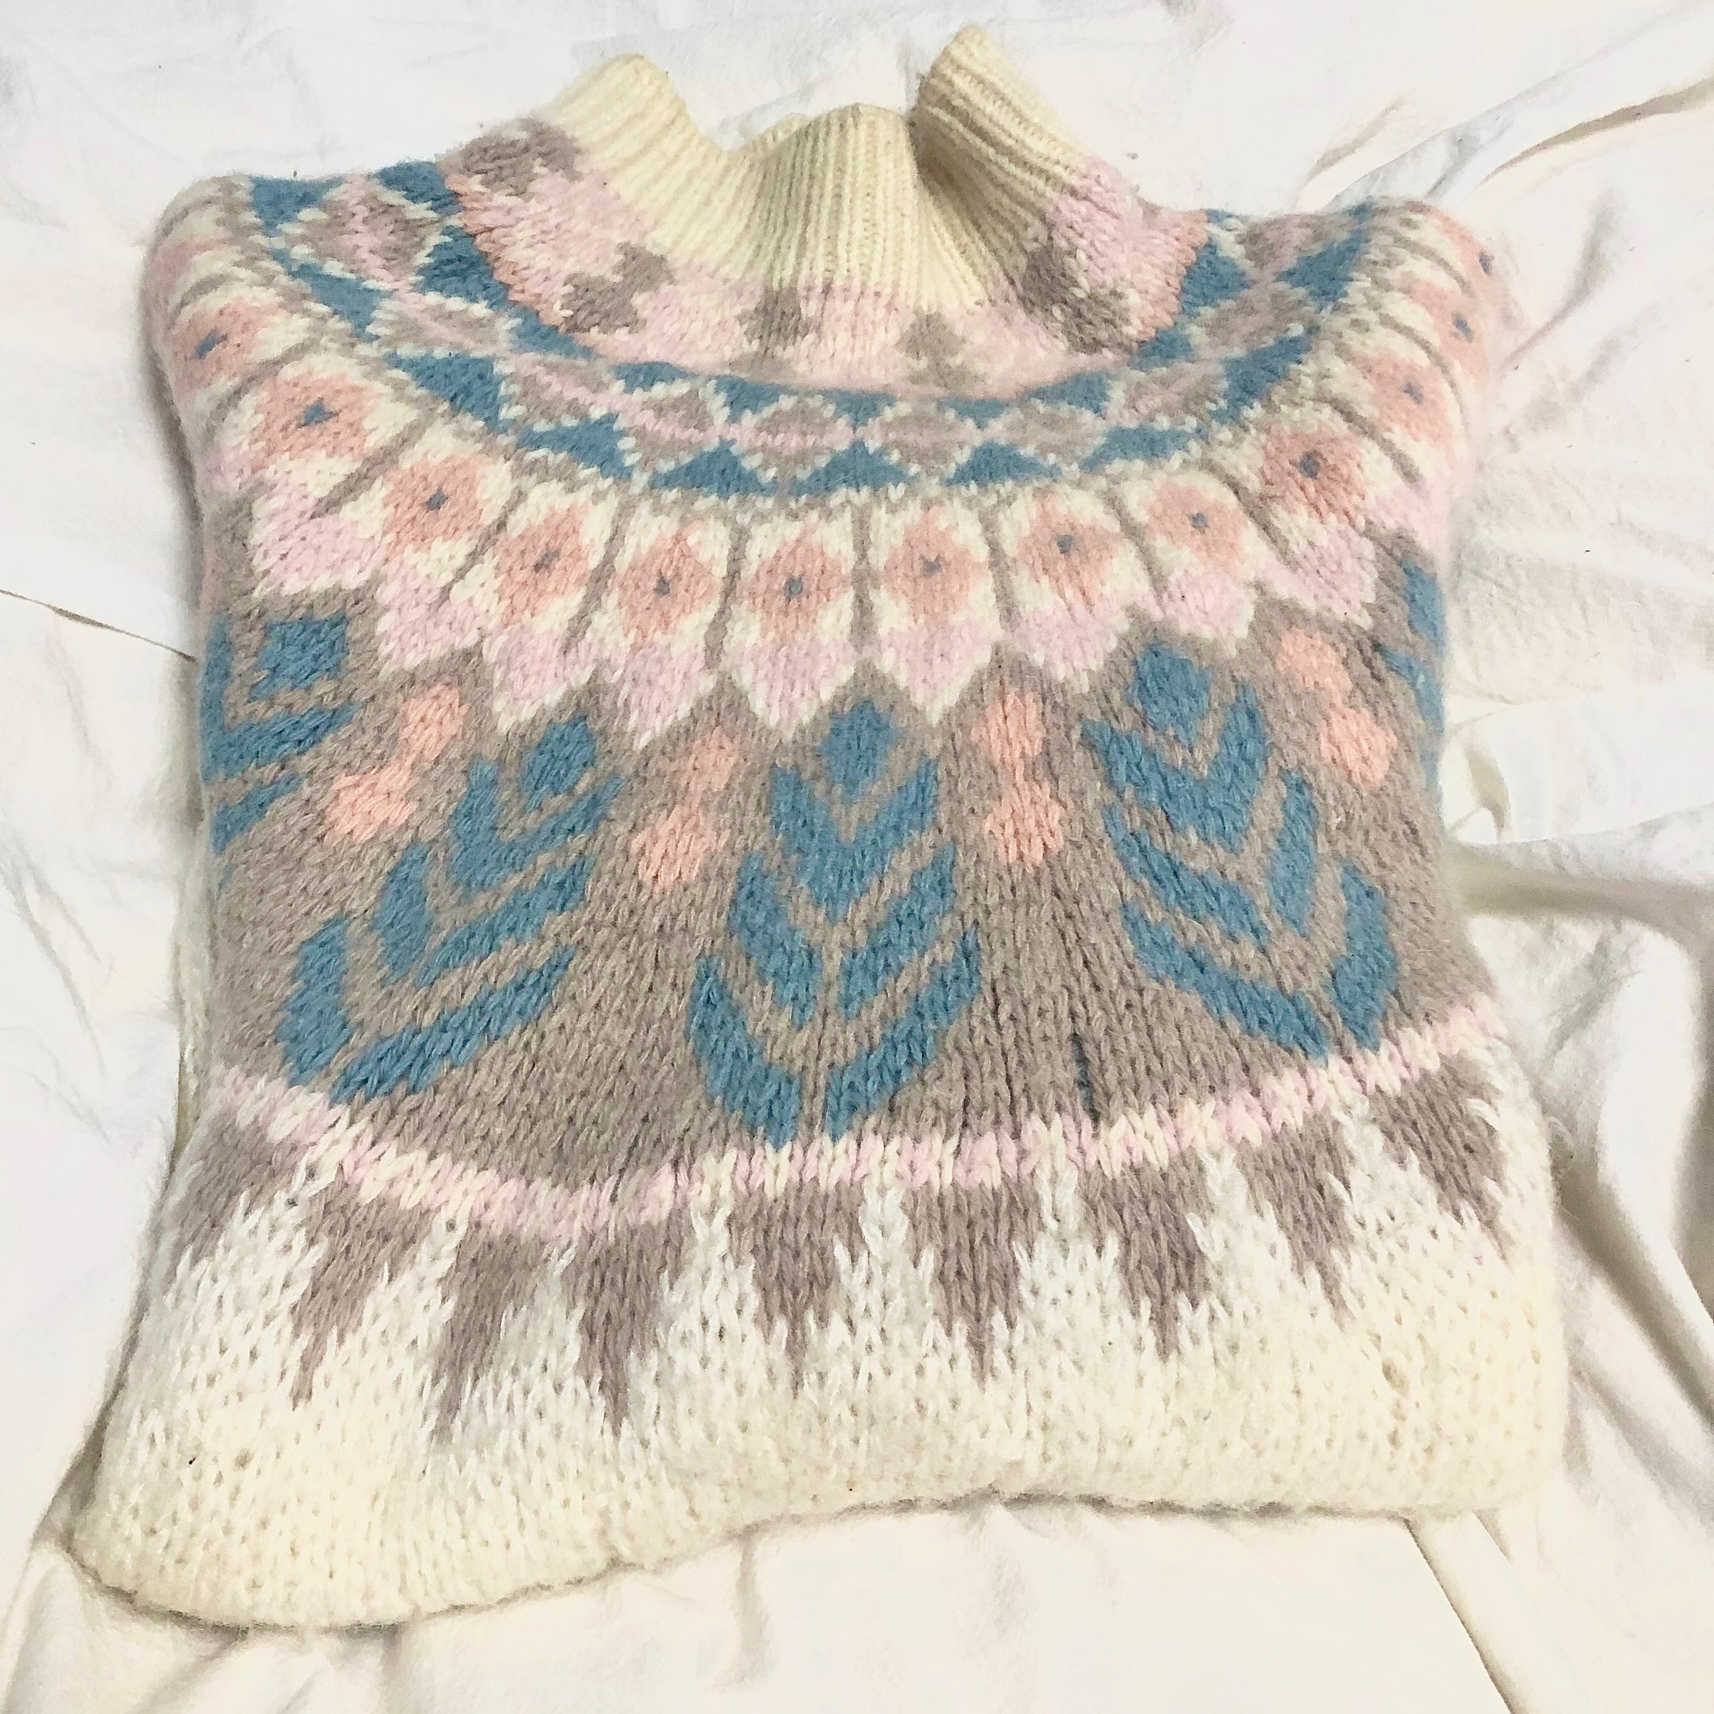 Recommend knit ♡